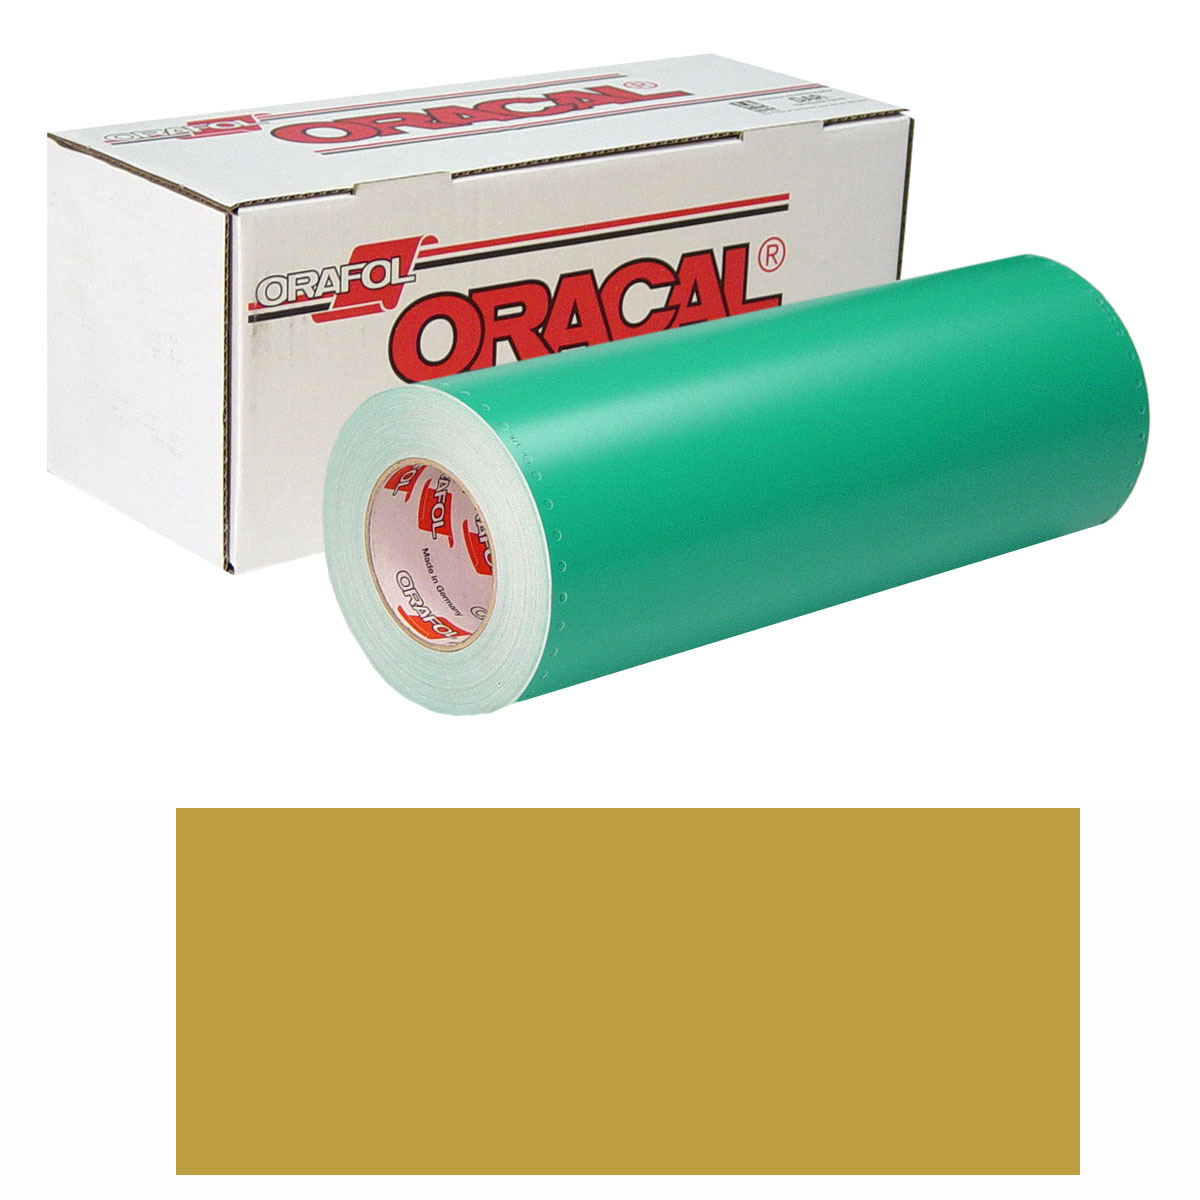 ORACAL 8500 15In X 10Yd 091 Gold